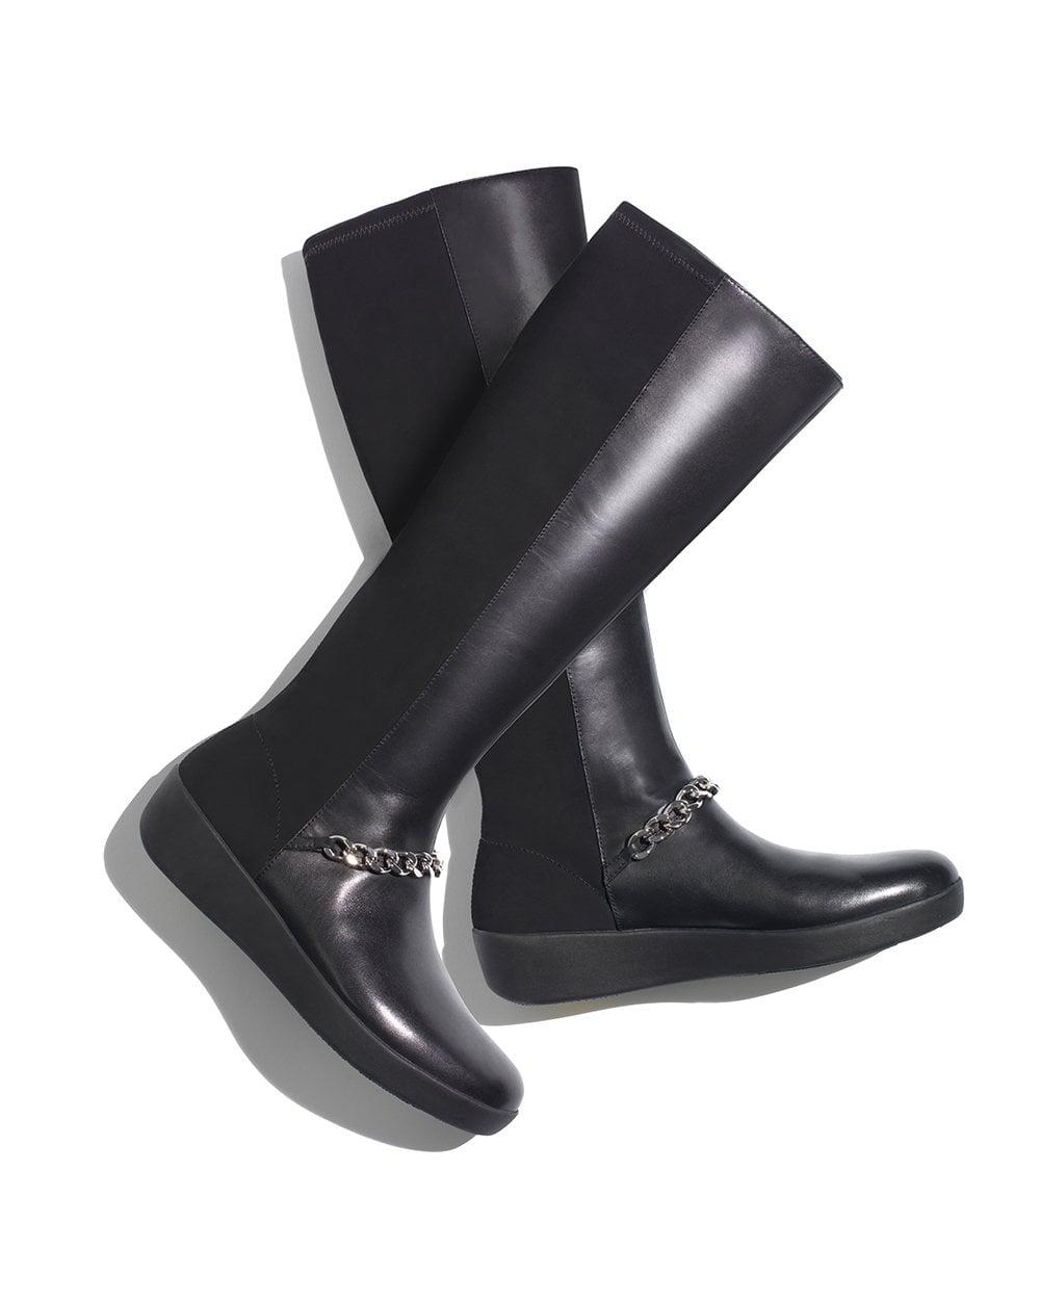 a46265d498 Fitflop Fifi Black Leather Chain Knee Boots in Black - Save 50% - Lyst